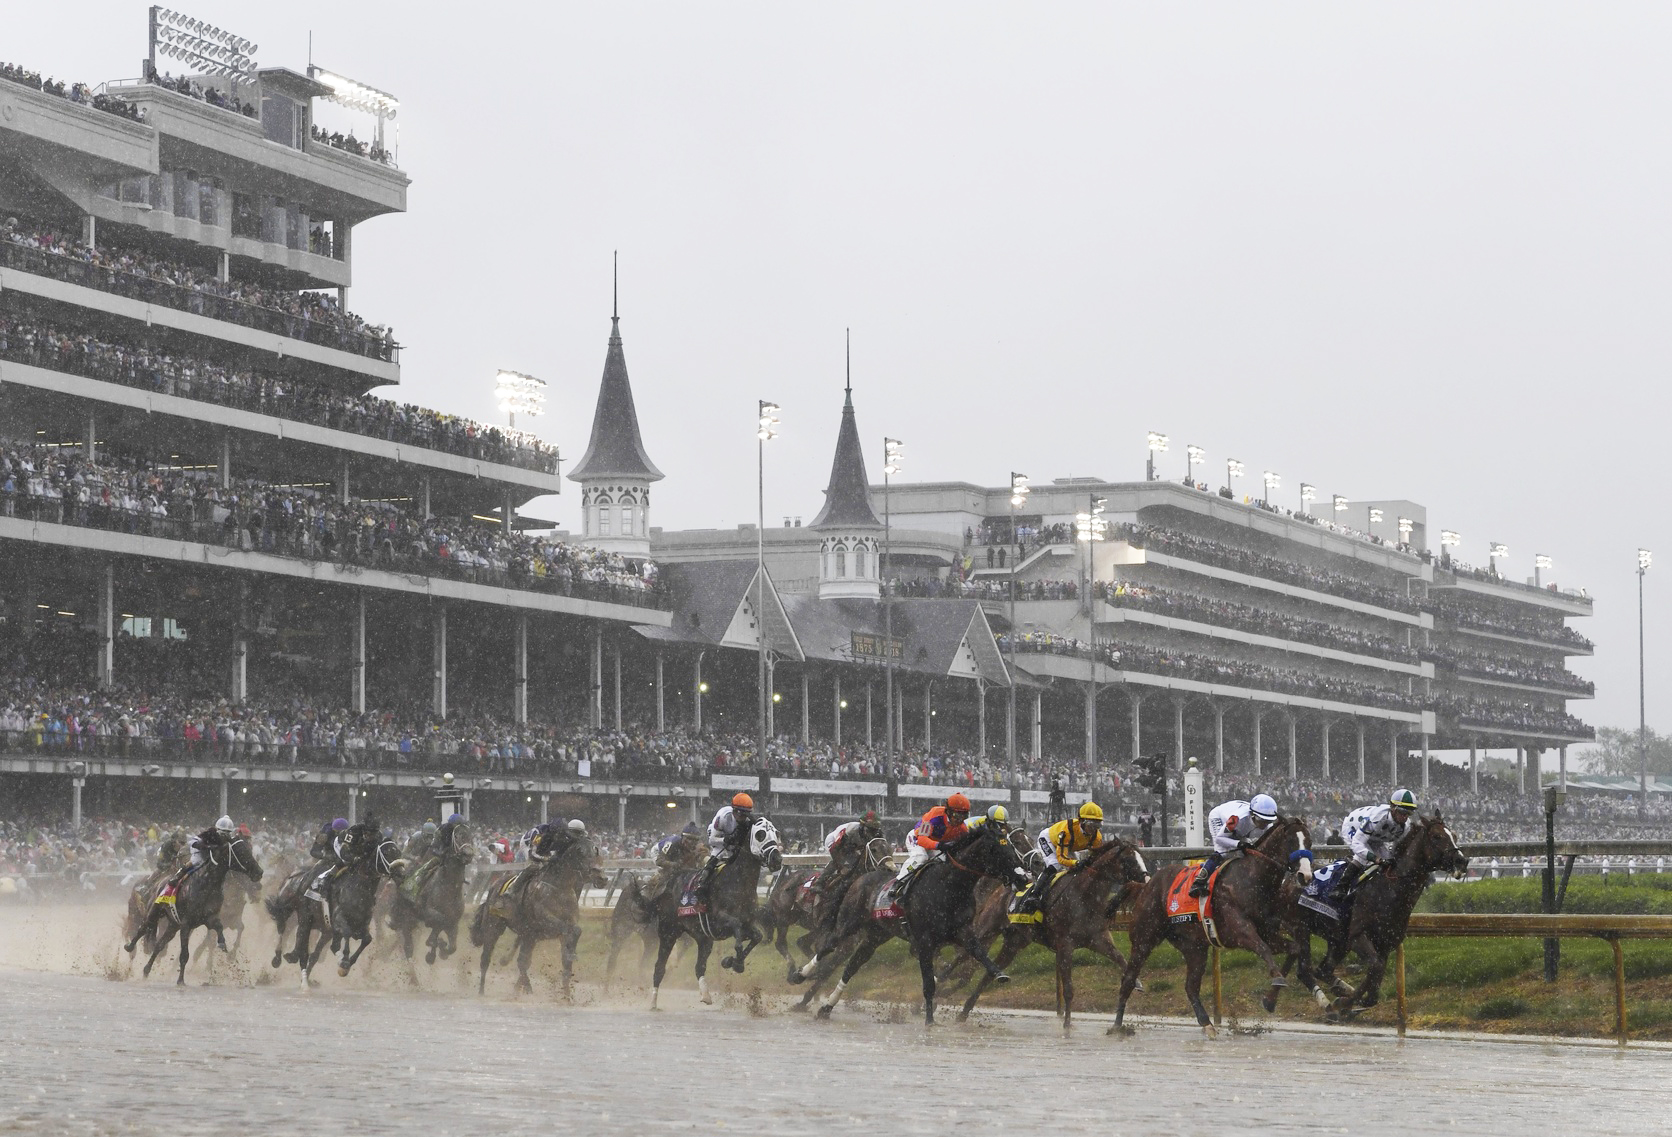 horse race at the Kentucky derby